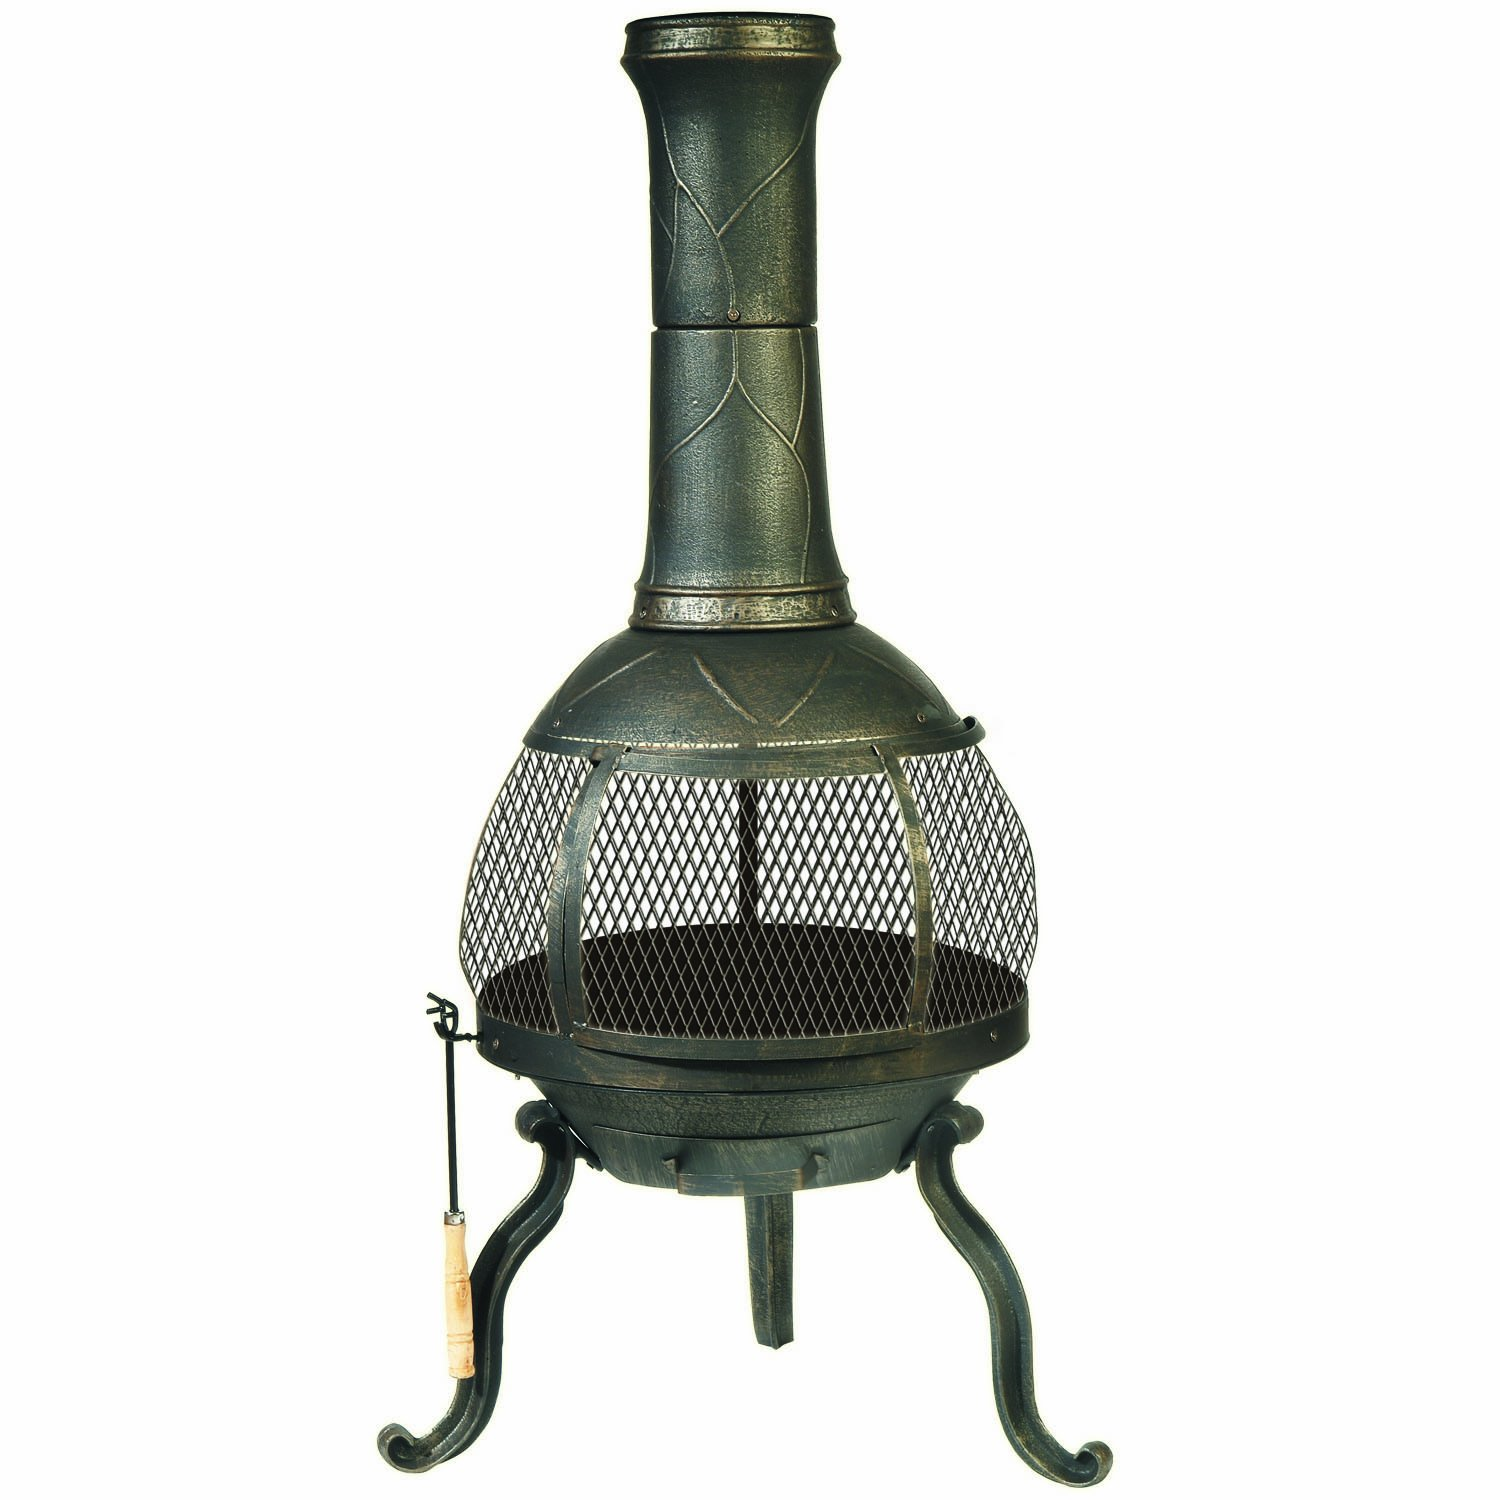 amazon com deckmate sonora outdoor chimenea fireplace model 30199